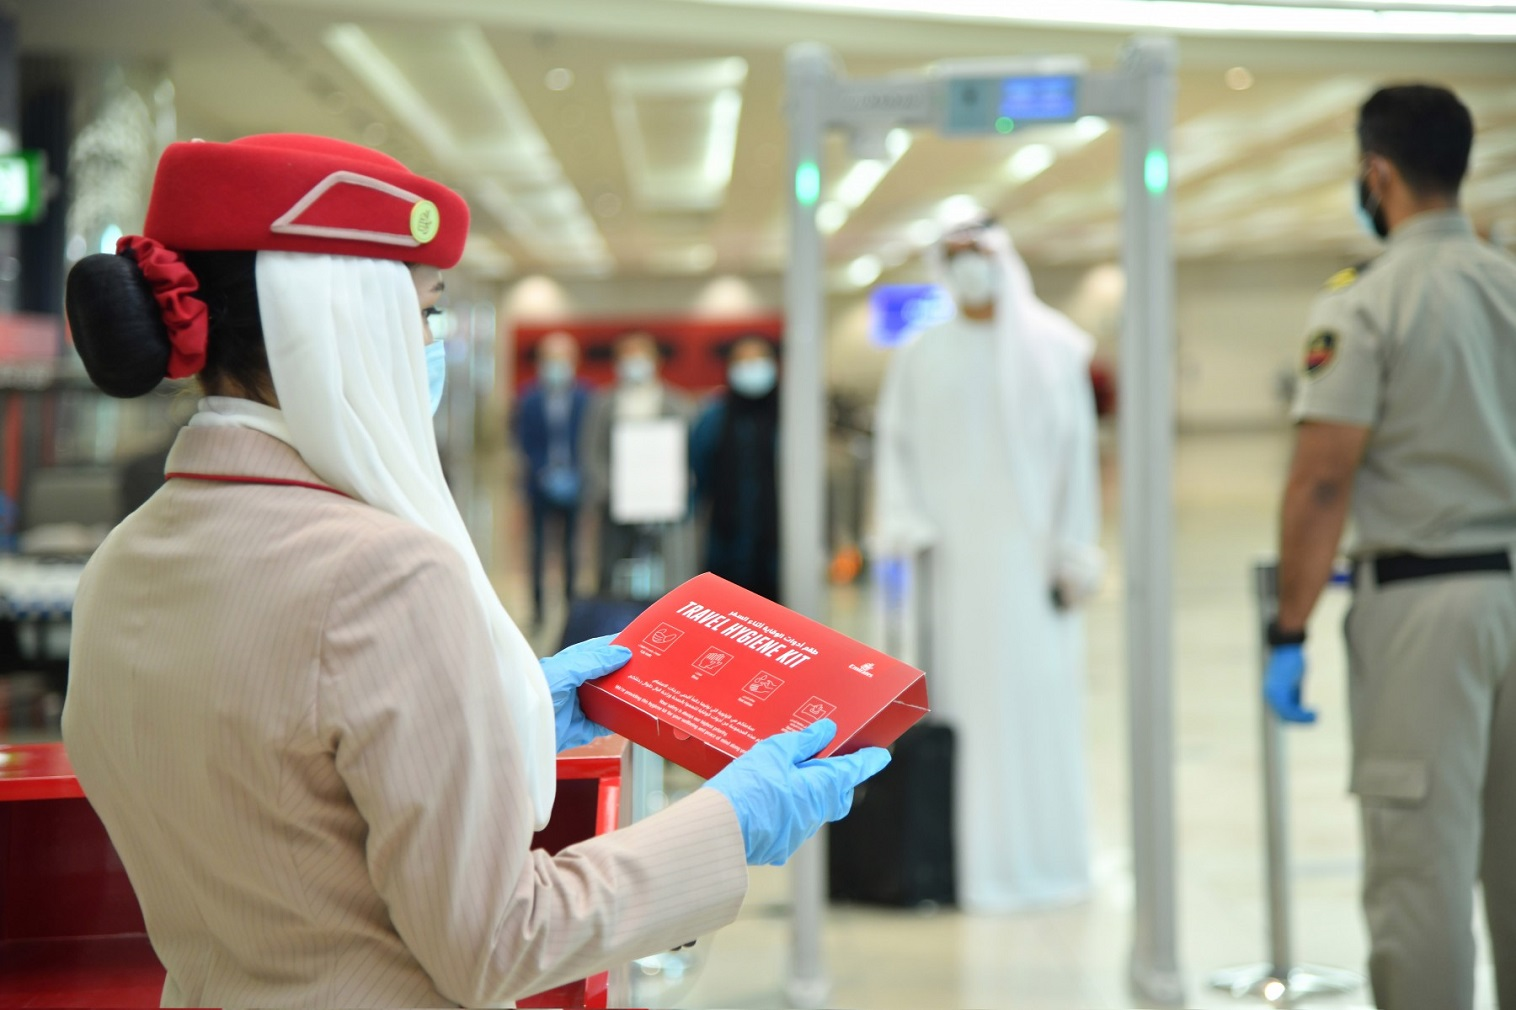 Gloves and masks are mandatory for all customers and employees at the airport in Dubai, while only masks are mandated on Emirates flights.